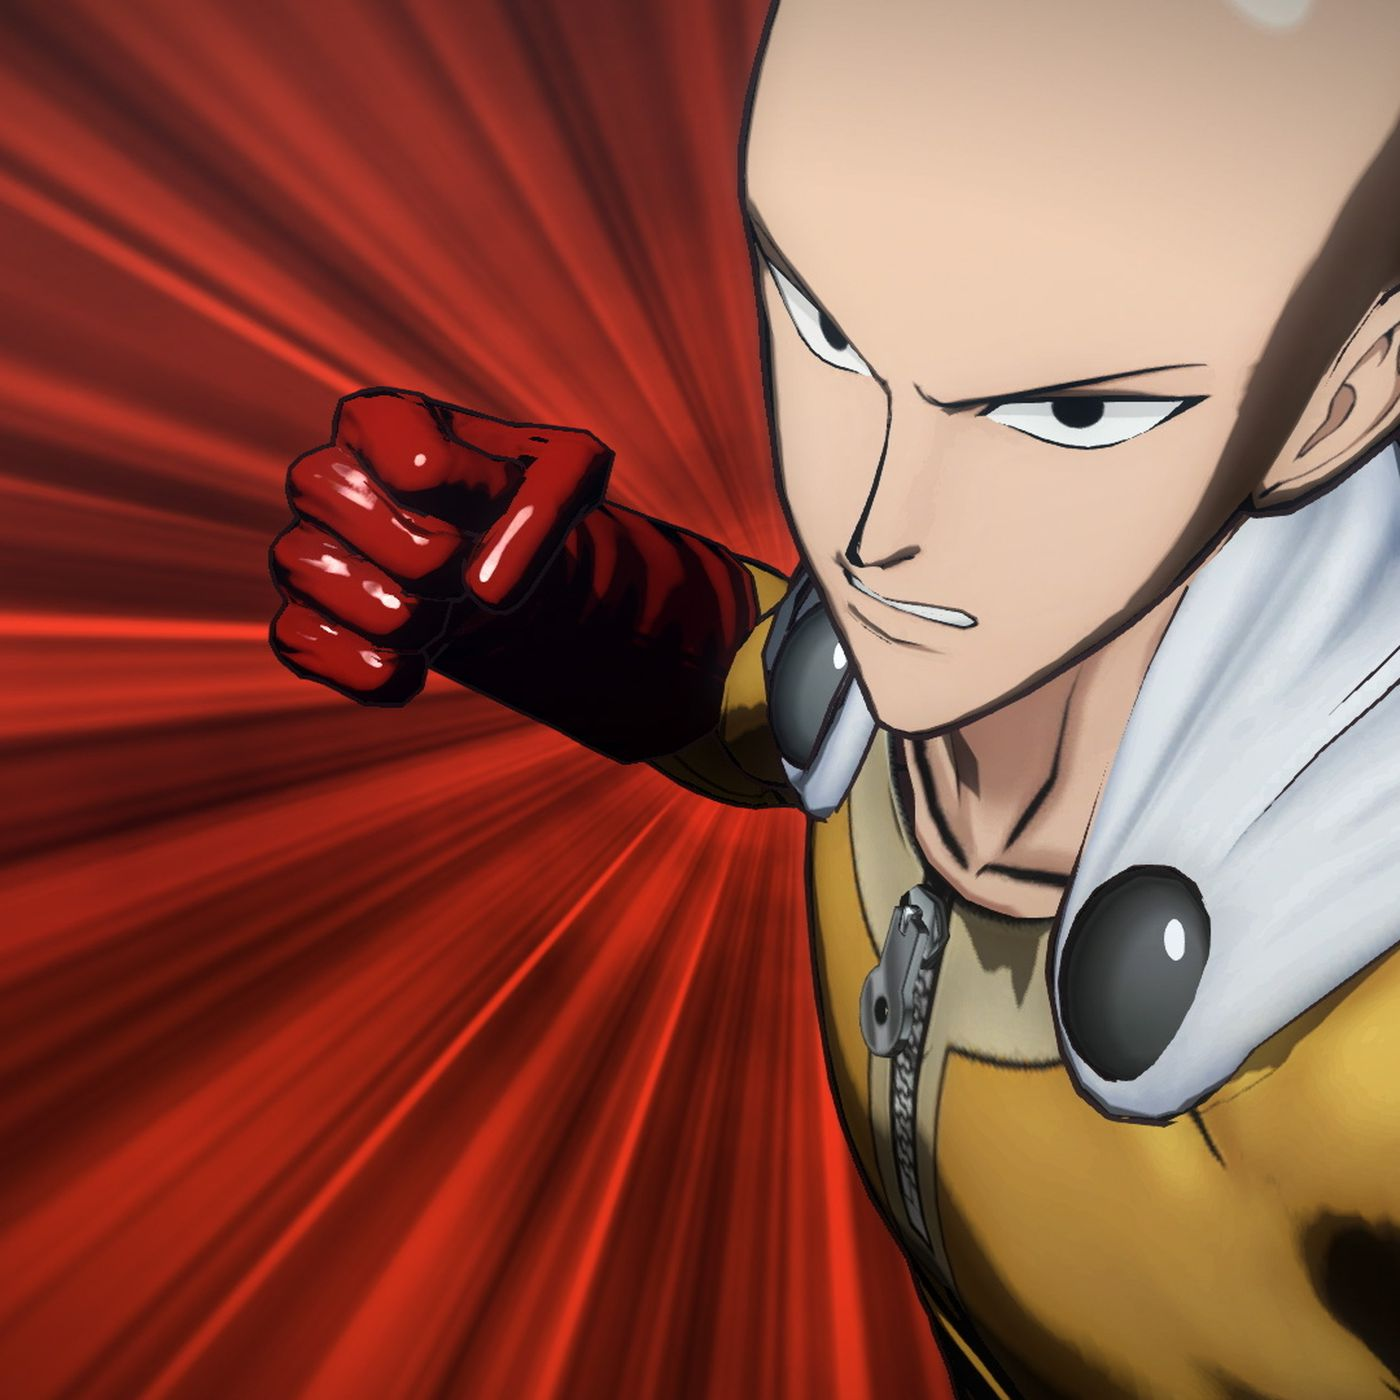 The week's best game trailers: One Punch Man, Baldur's Gate 3, and more -  Polygon